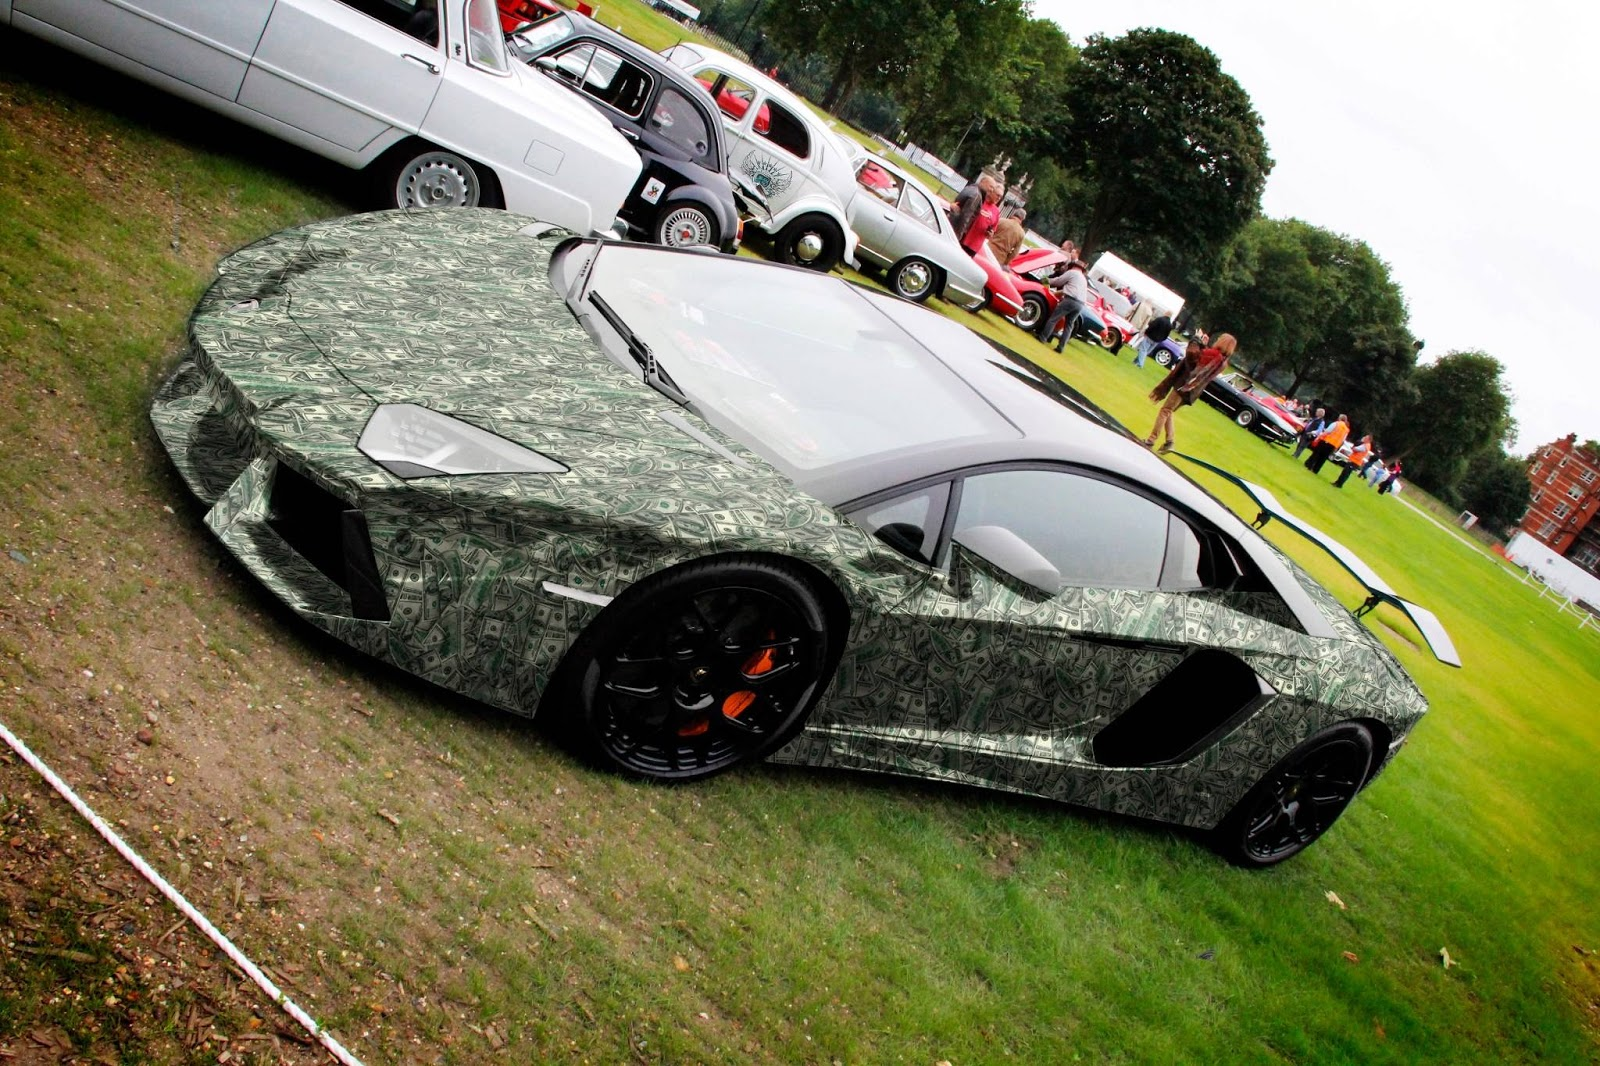 8 Million Dollar Car Wallpapers Aventador Wrapped In 100 Bills Thanks To Photoshop